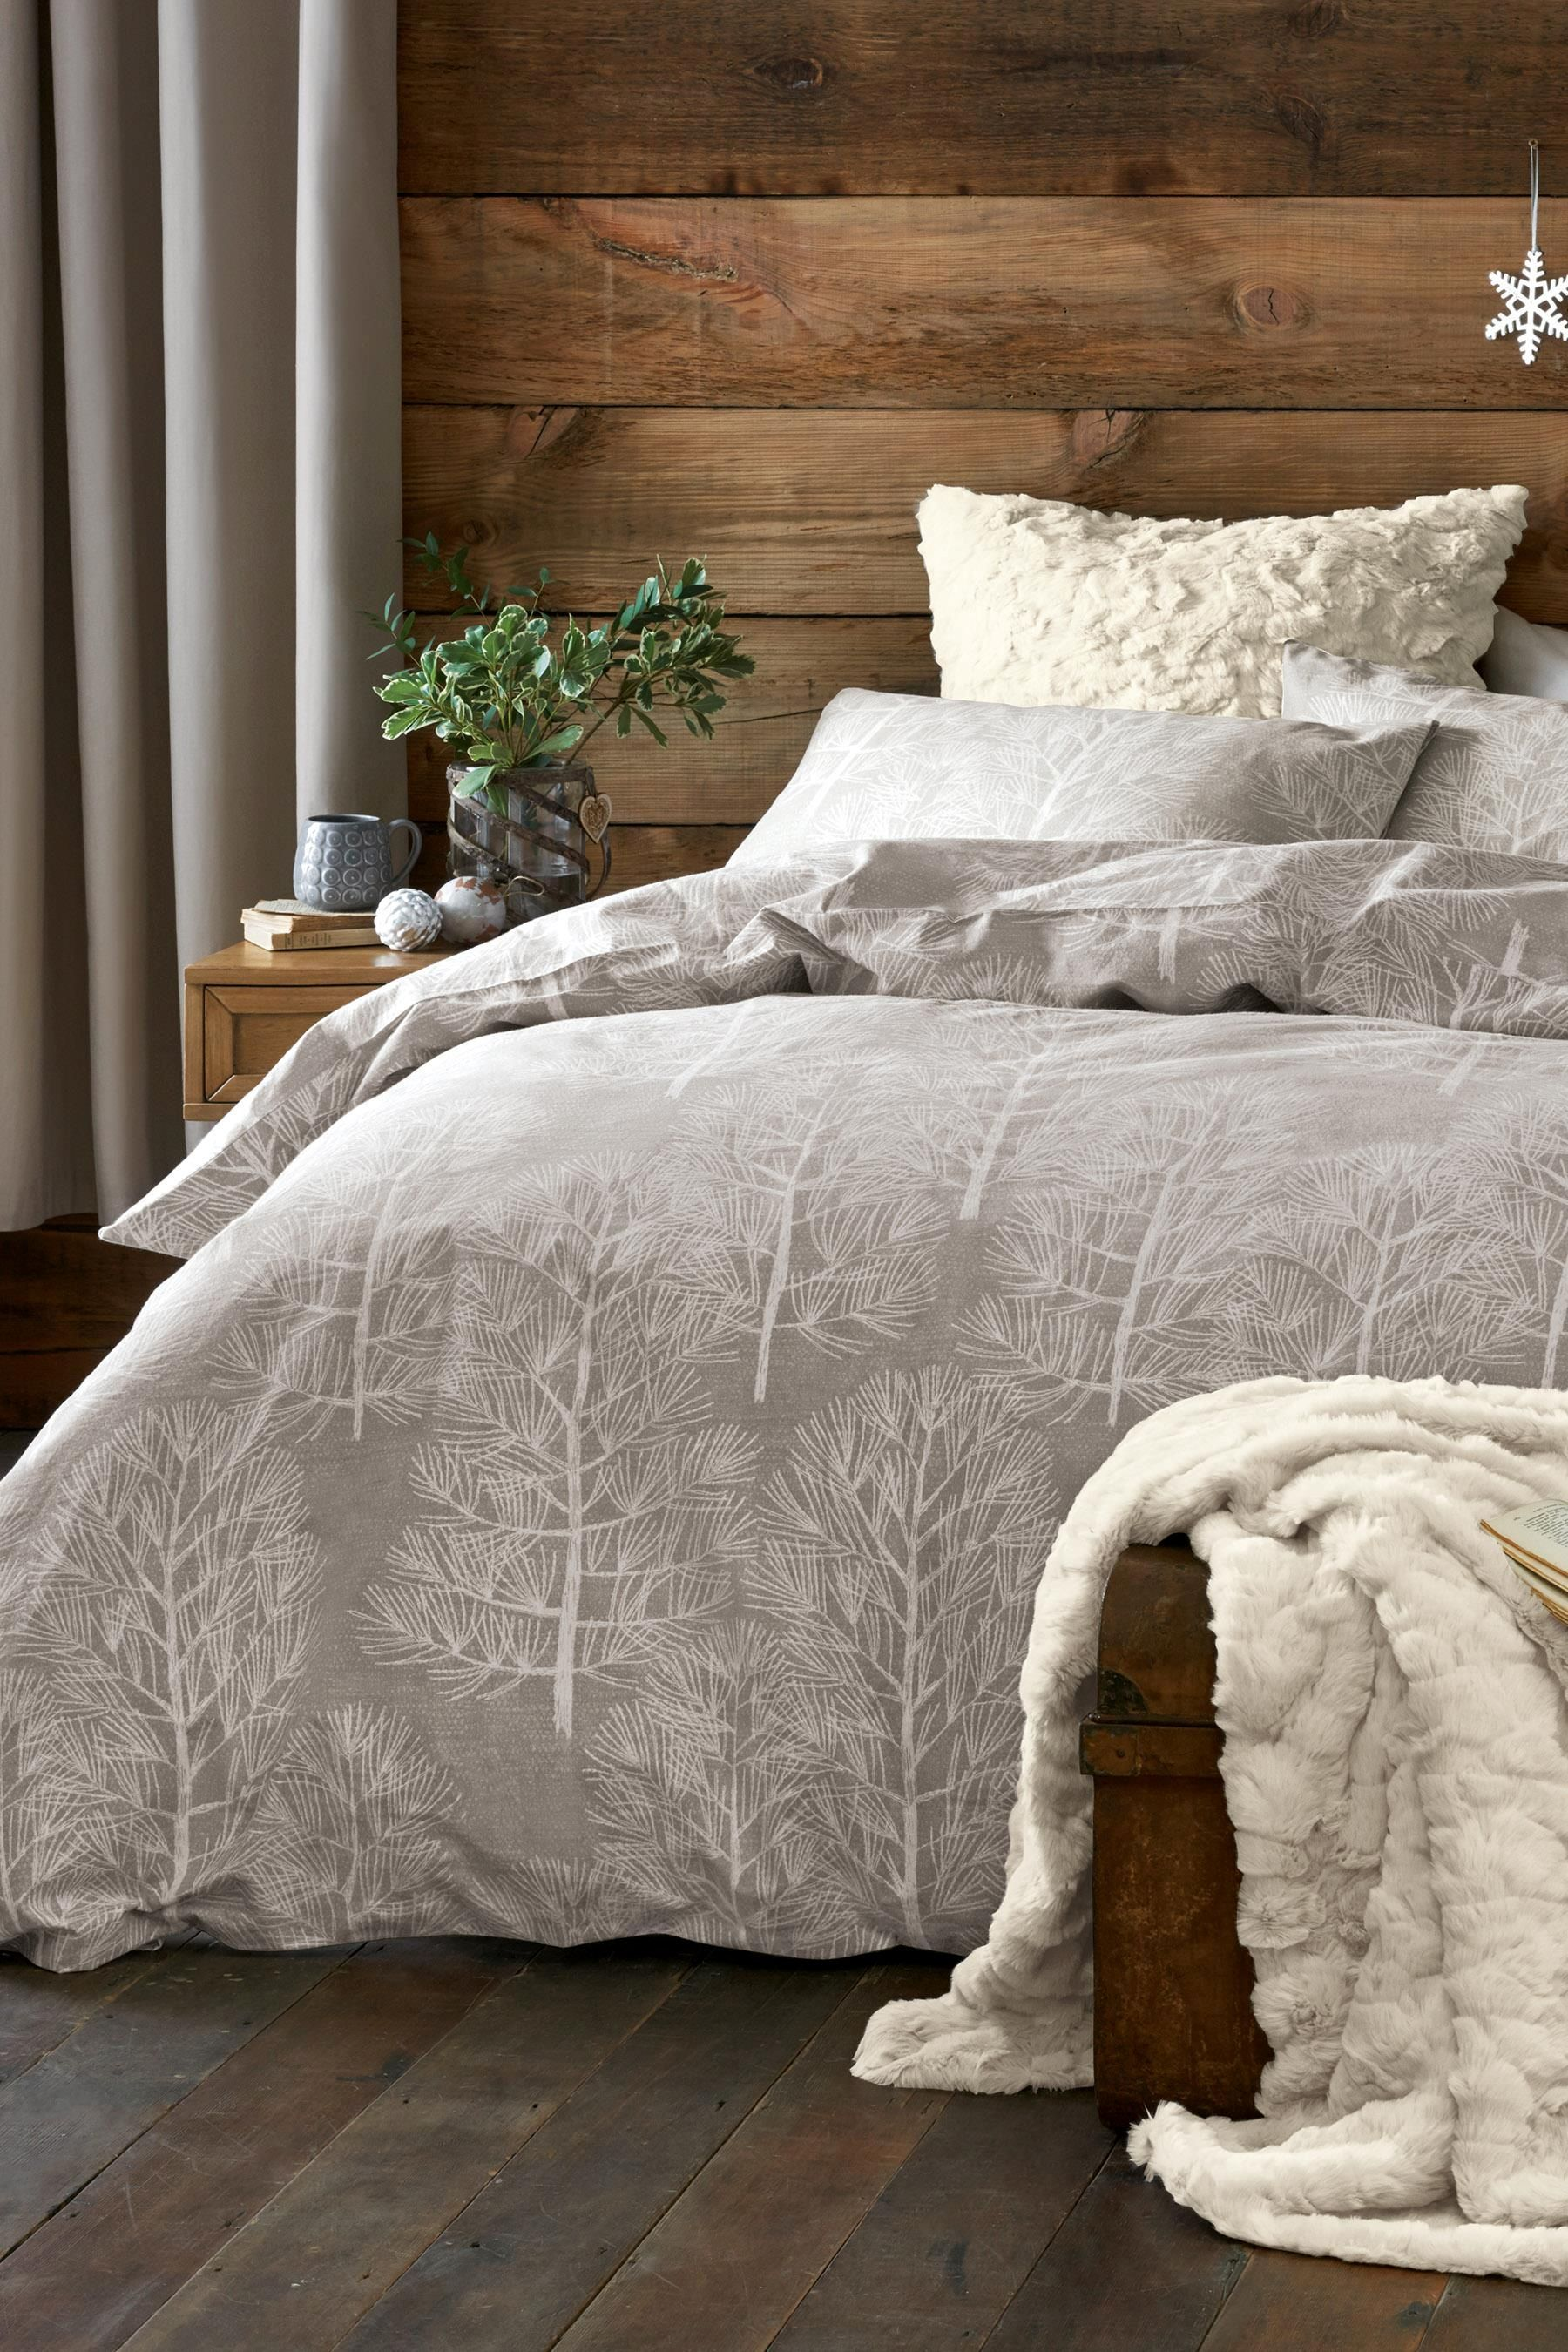 Buy Brushed Cotton Natural Trees Bed Set From The Next Uk Online Shop Bed Linens Luxury Home Bedroom Hygge Bedroom